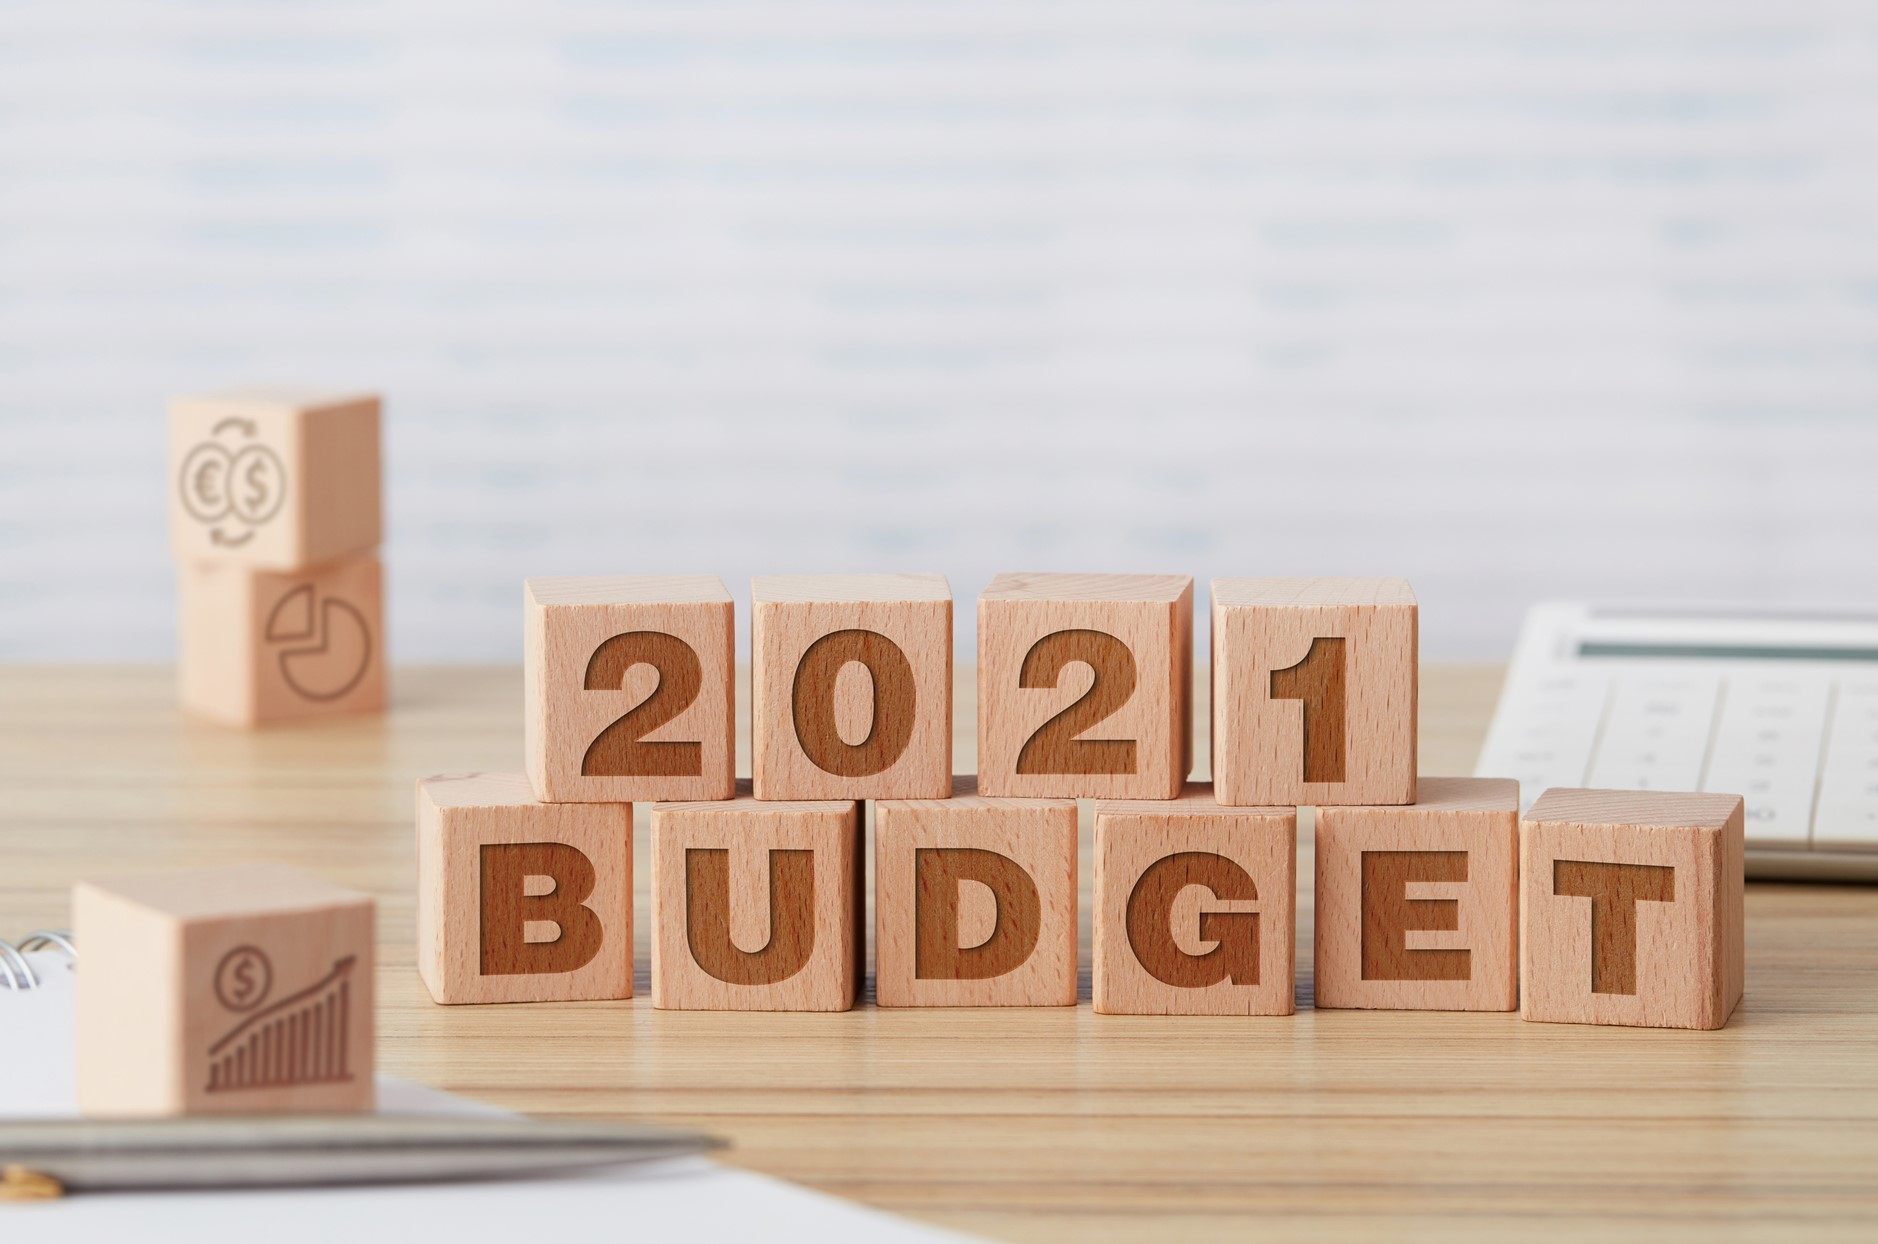 CRASH COURSE: HISTORY OF THE FEDERAL BUDGET